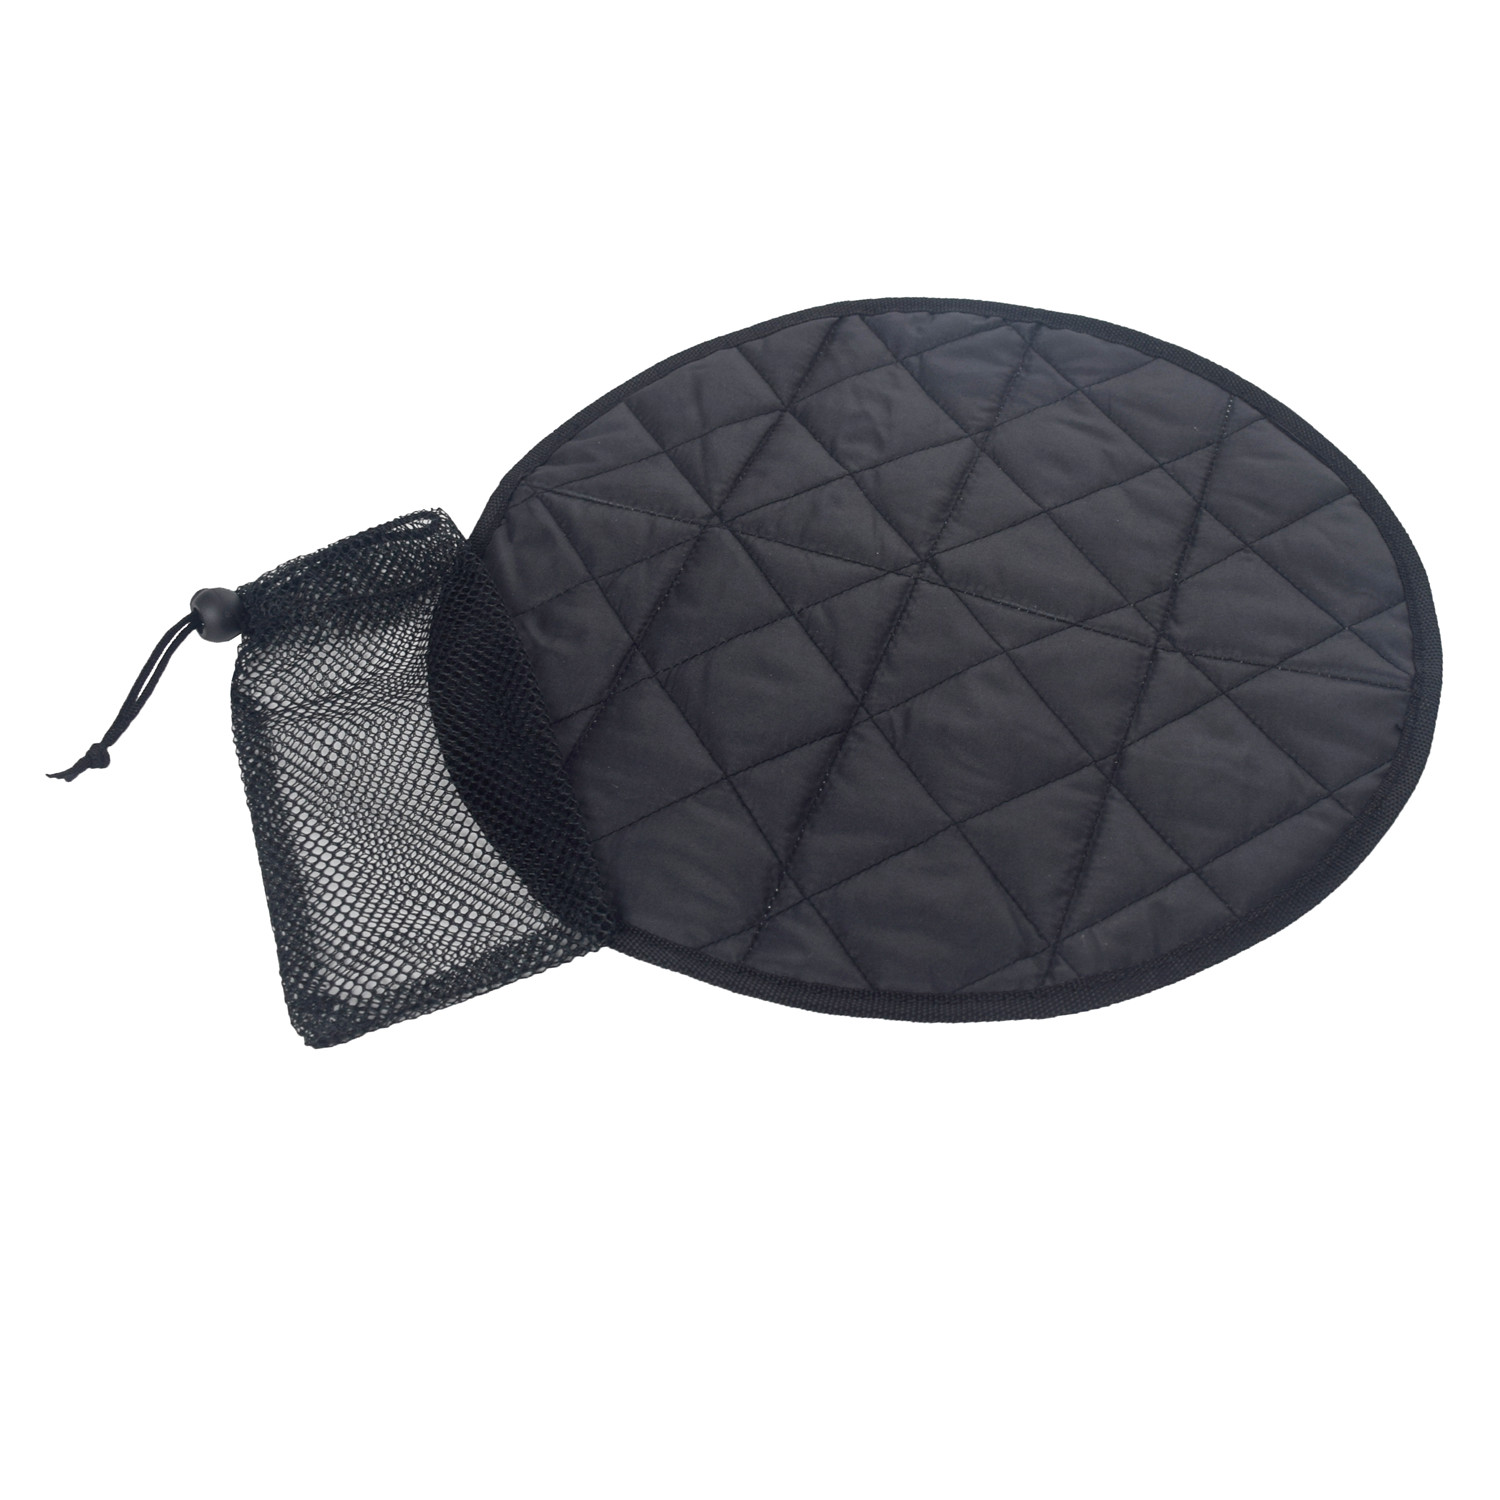 Waterproof Outdoor Foldable Portable Seat Cushion with Mesh Carry Bag